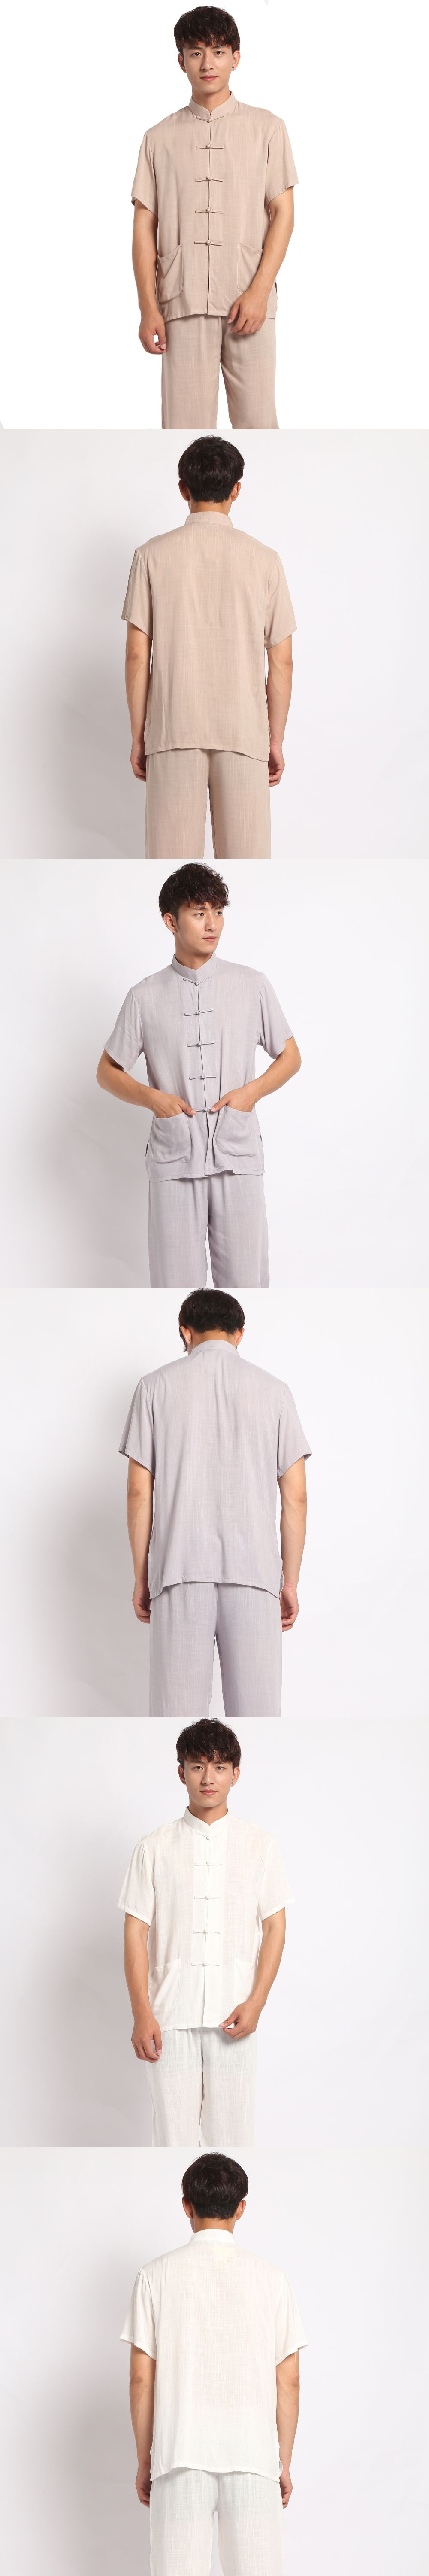 Novelty Chinese Style Men Handmade Button Pajama Set Cotton Linen Pyjamas  Suit Shirt Pants Trousers Sleepwear M L 031d8129b